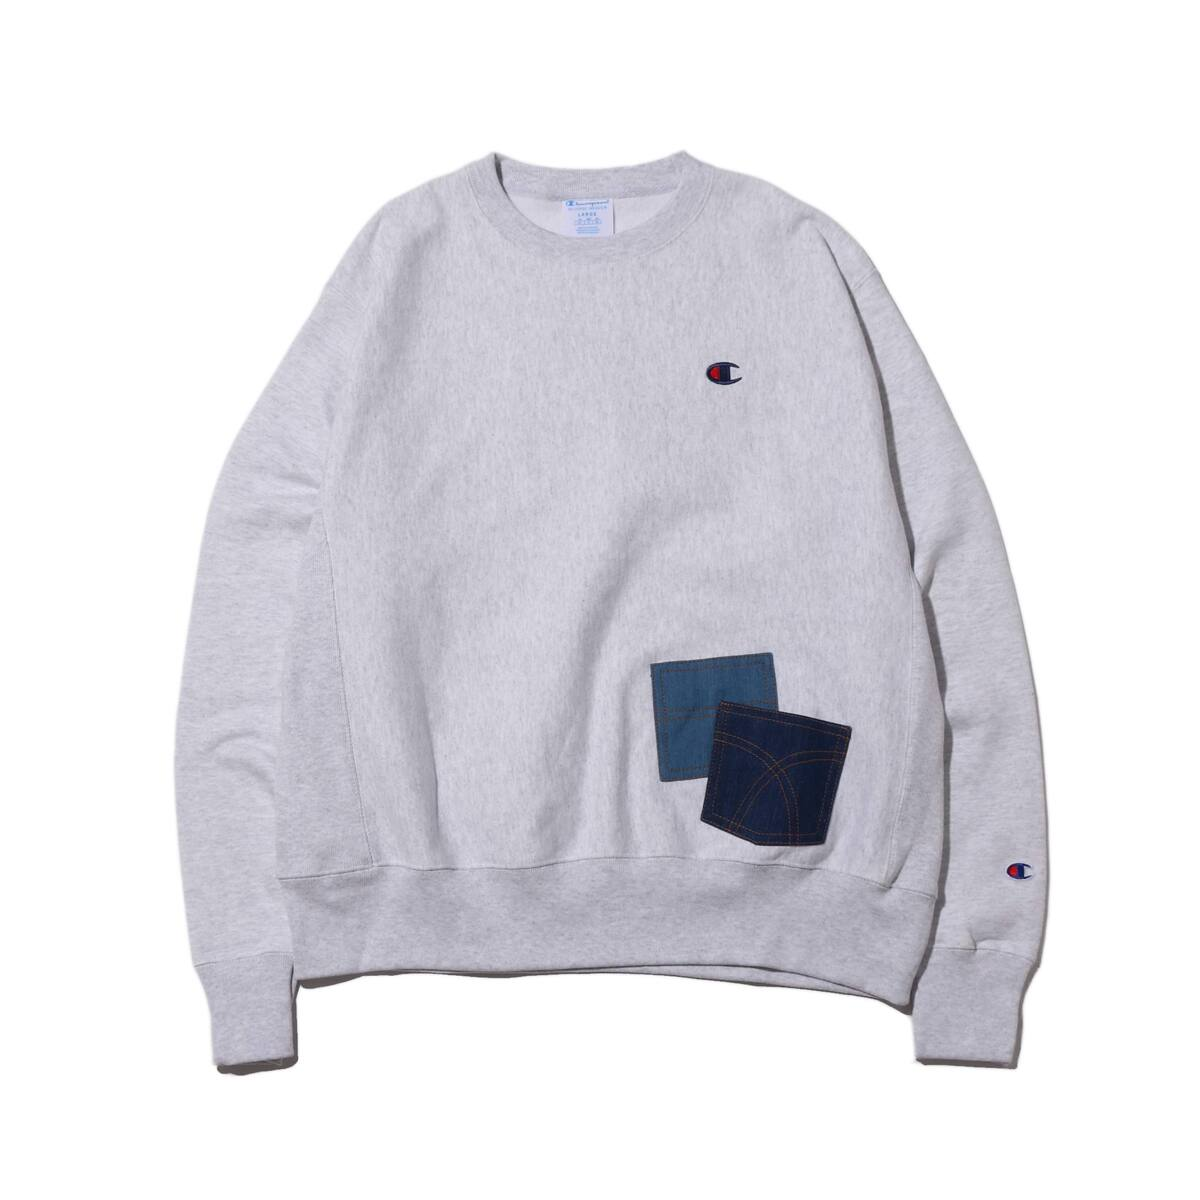 REMAKE CREW NECK by 太田夢莉 SILVER 19HO-S_photo_large